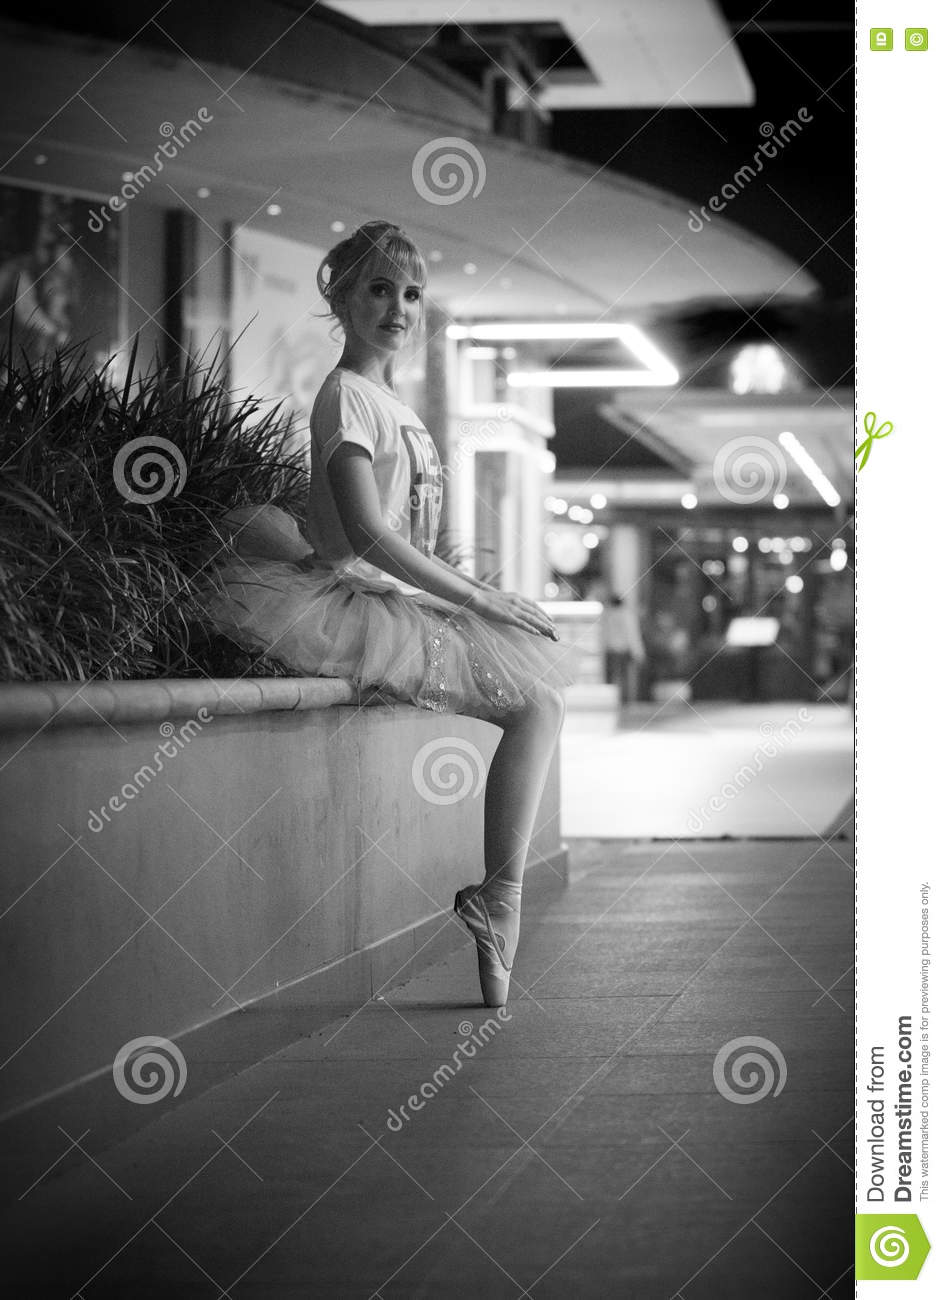 Monochrome black and white portrait of a beautiful blonde ballerina wearing pointe ballet shoes stalkings a tutu and t shirt seated on a bench in an